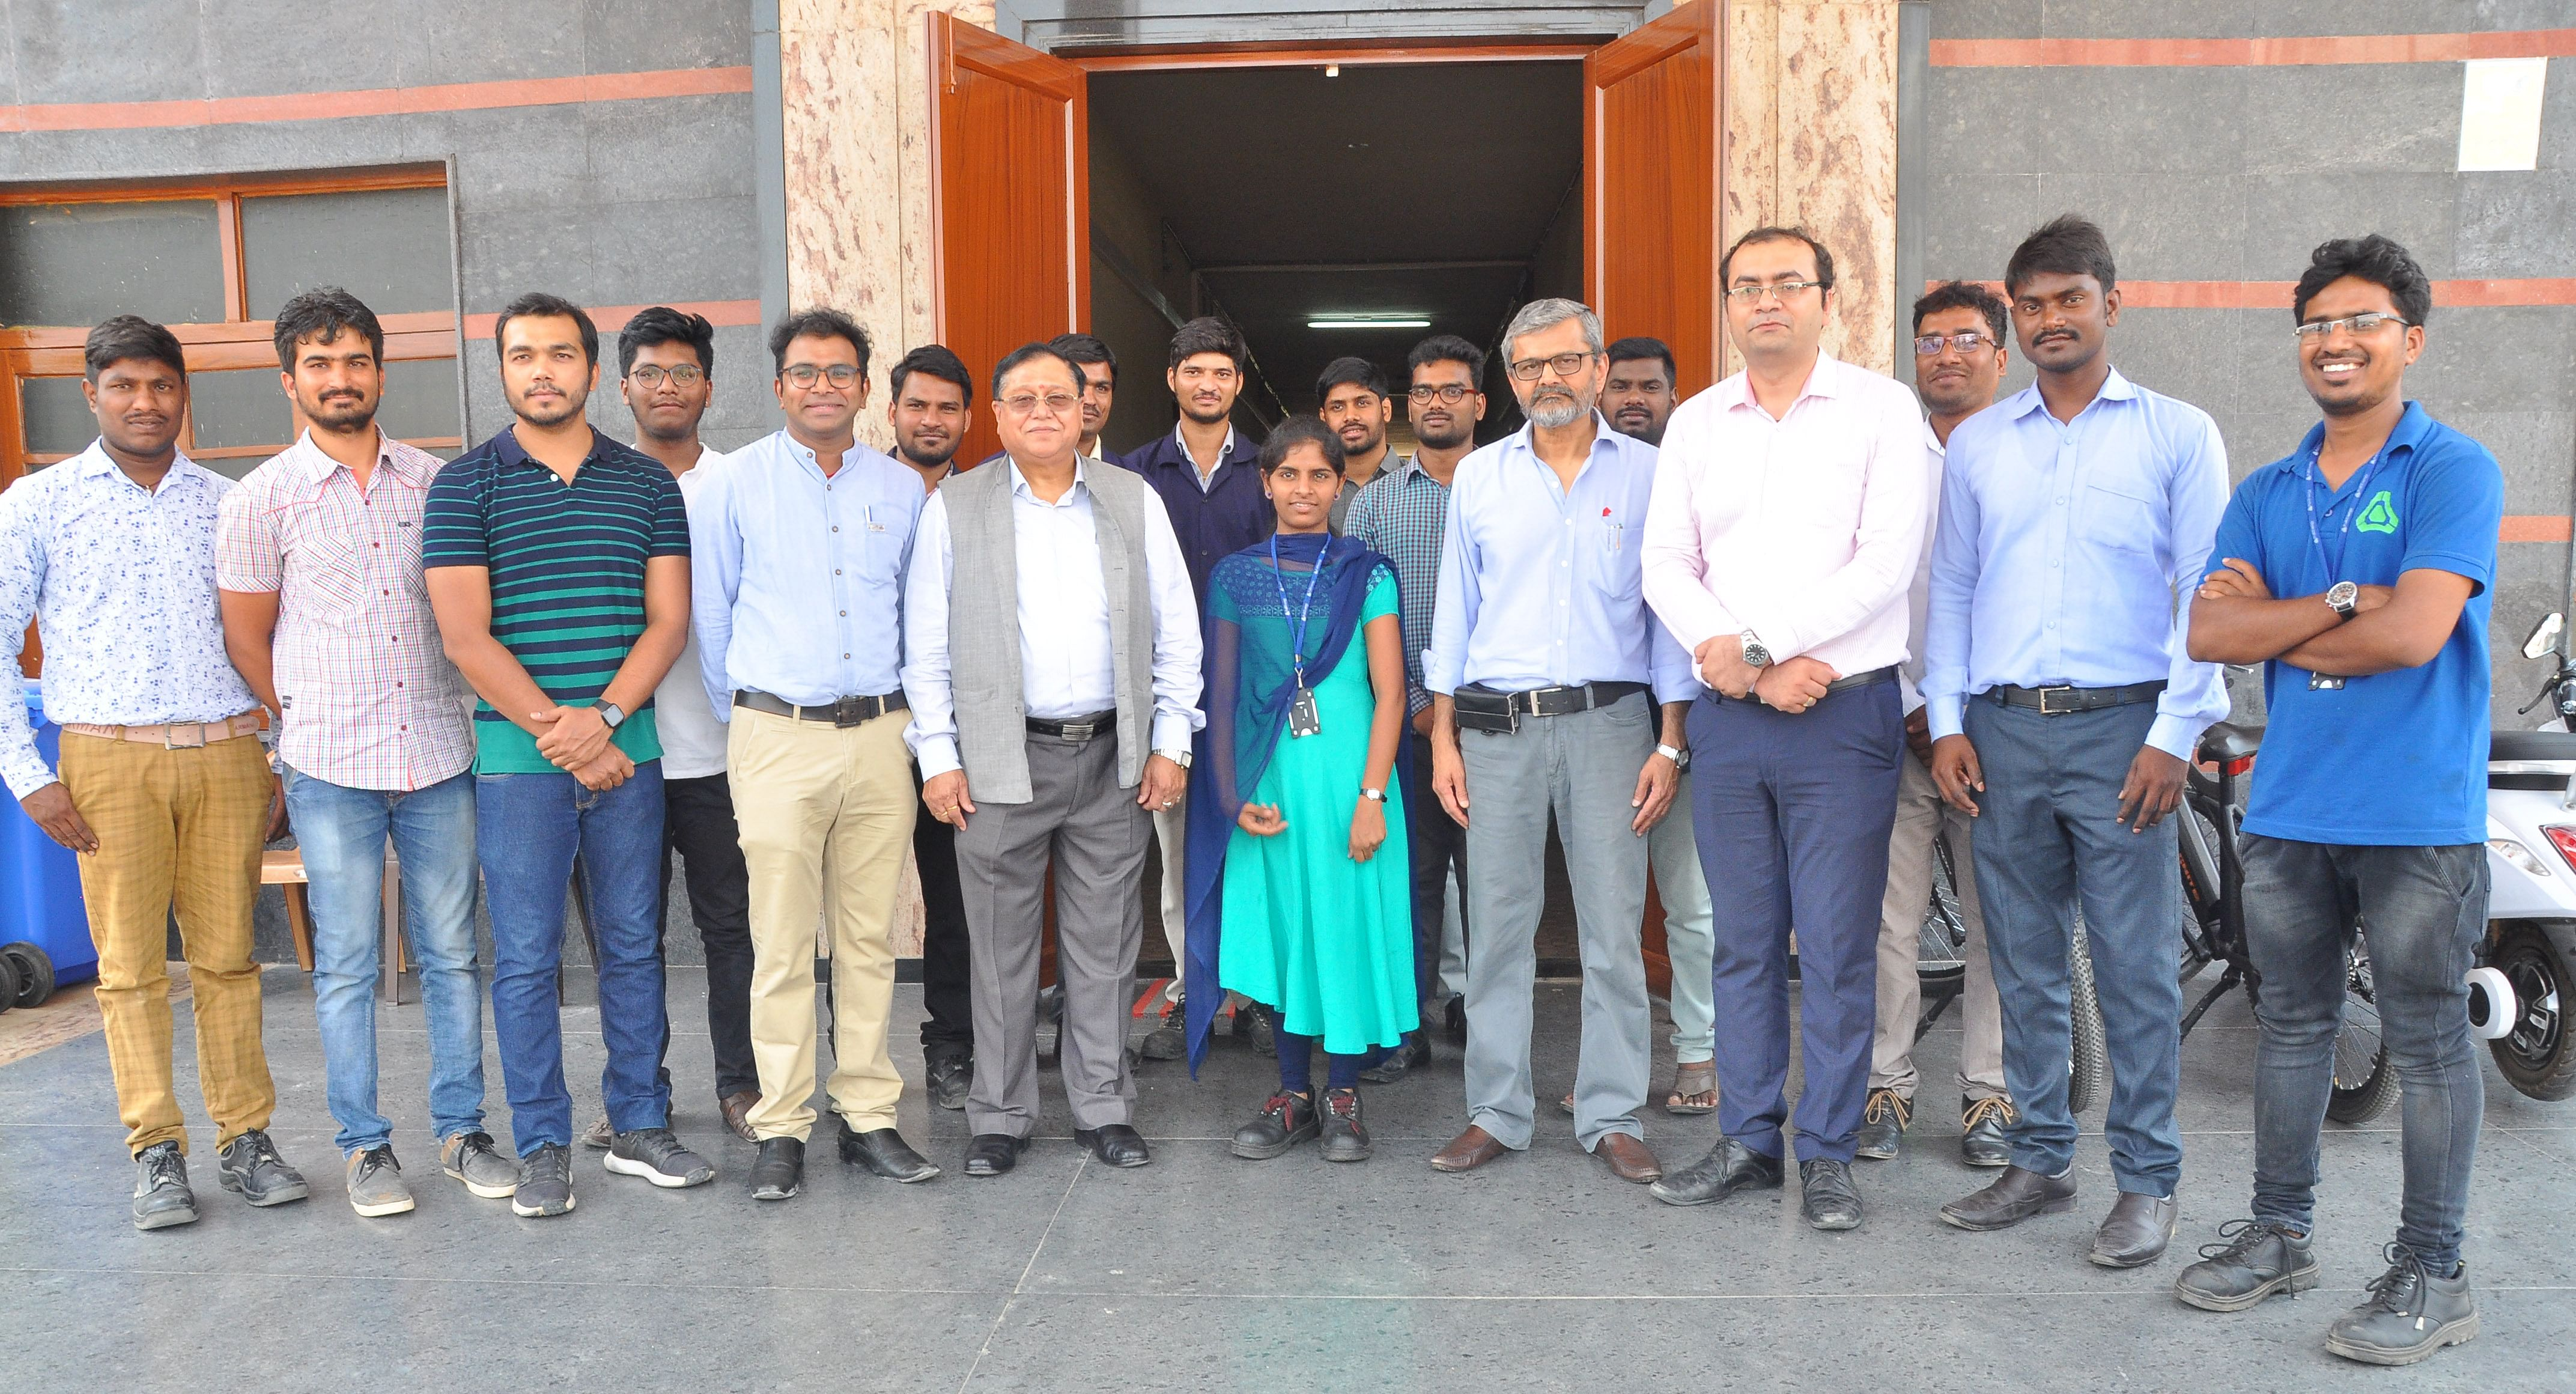 Dr. V.K. Saraswat, Member, NITI Aayog, and Prof U.B. Desai, Director, IIT Hyderabad, with the PUR EV team at the Manufacturing Unit near IIT Hyderabad on 28th April 2019.